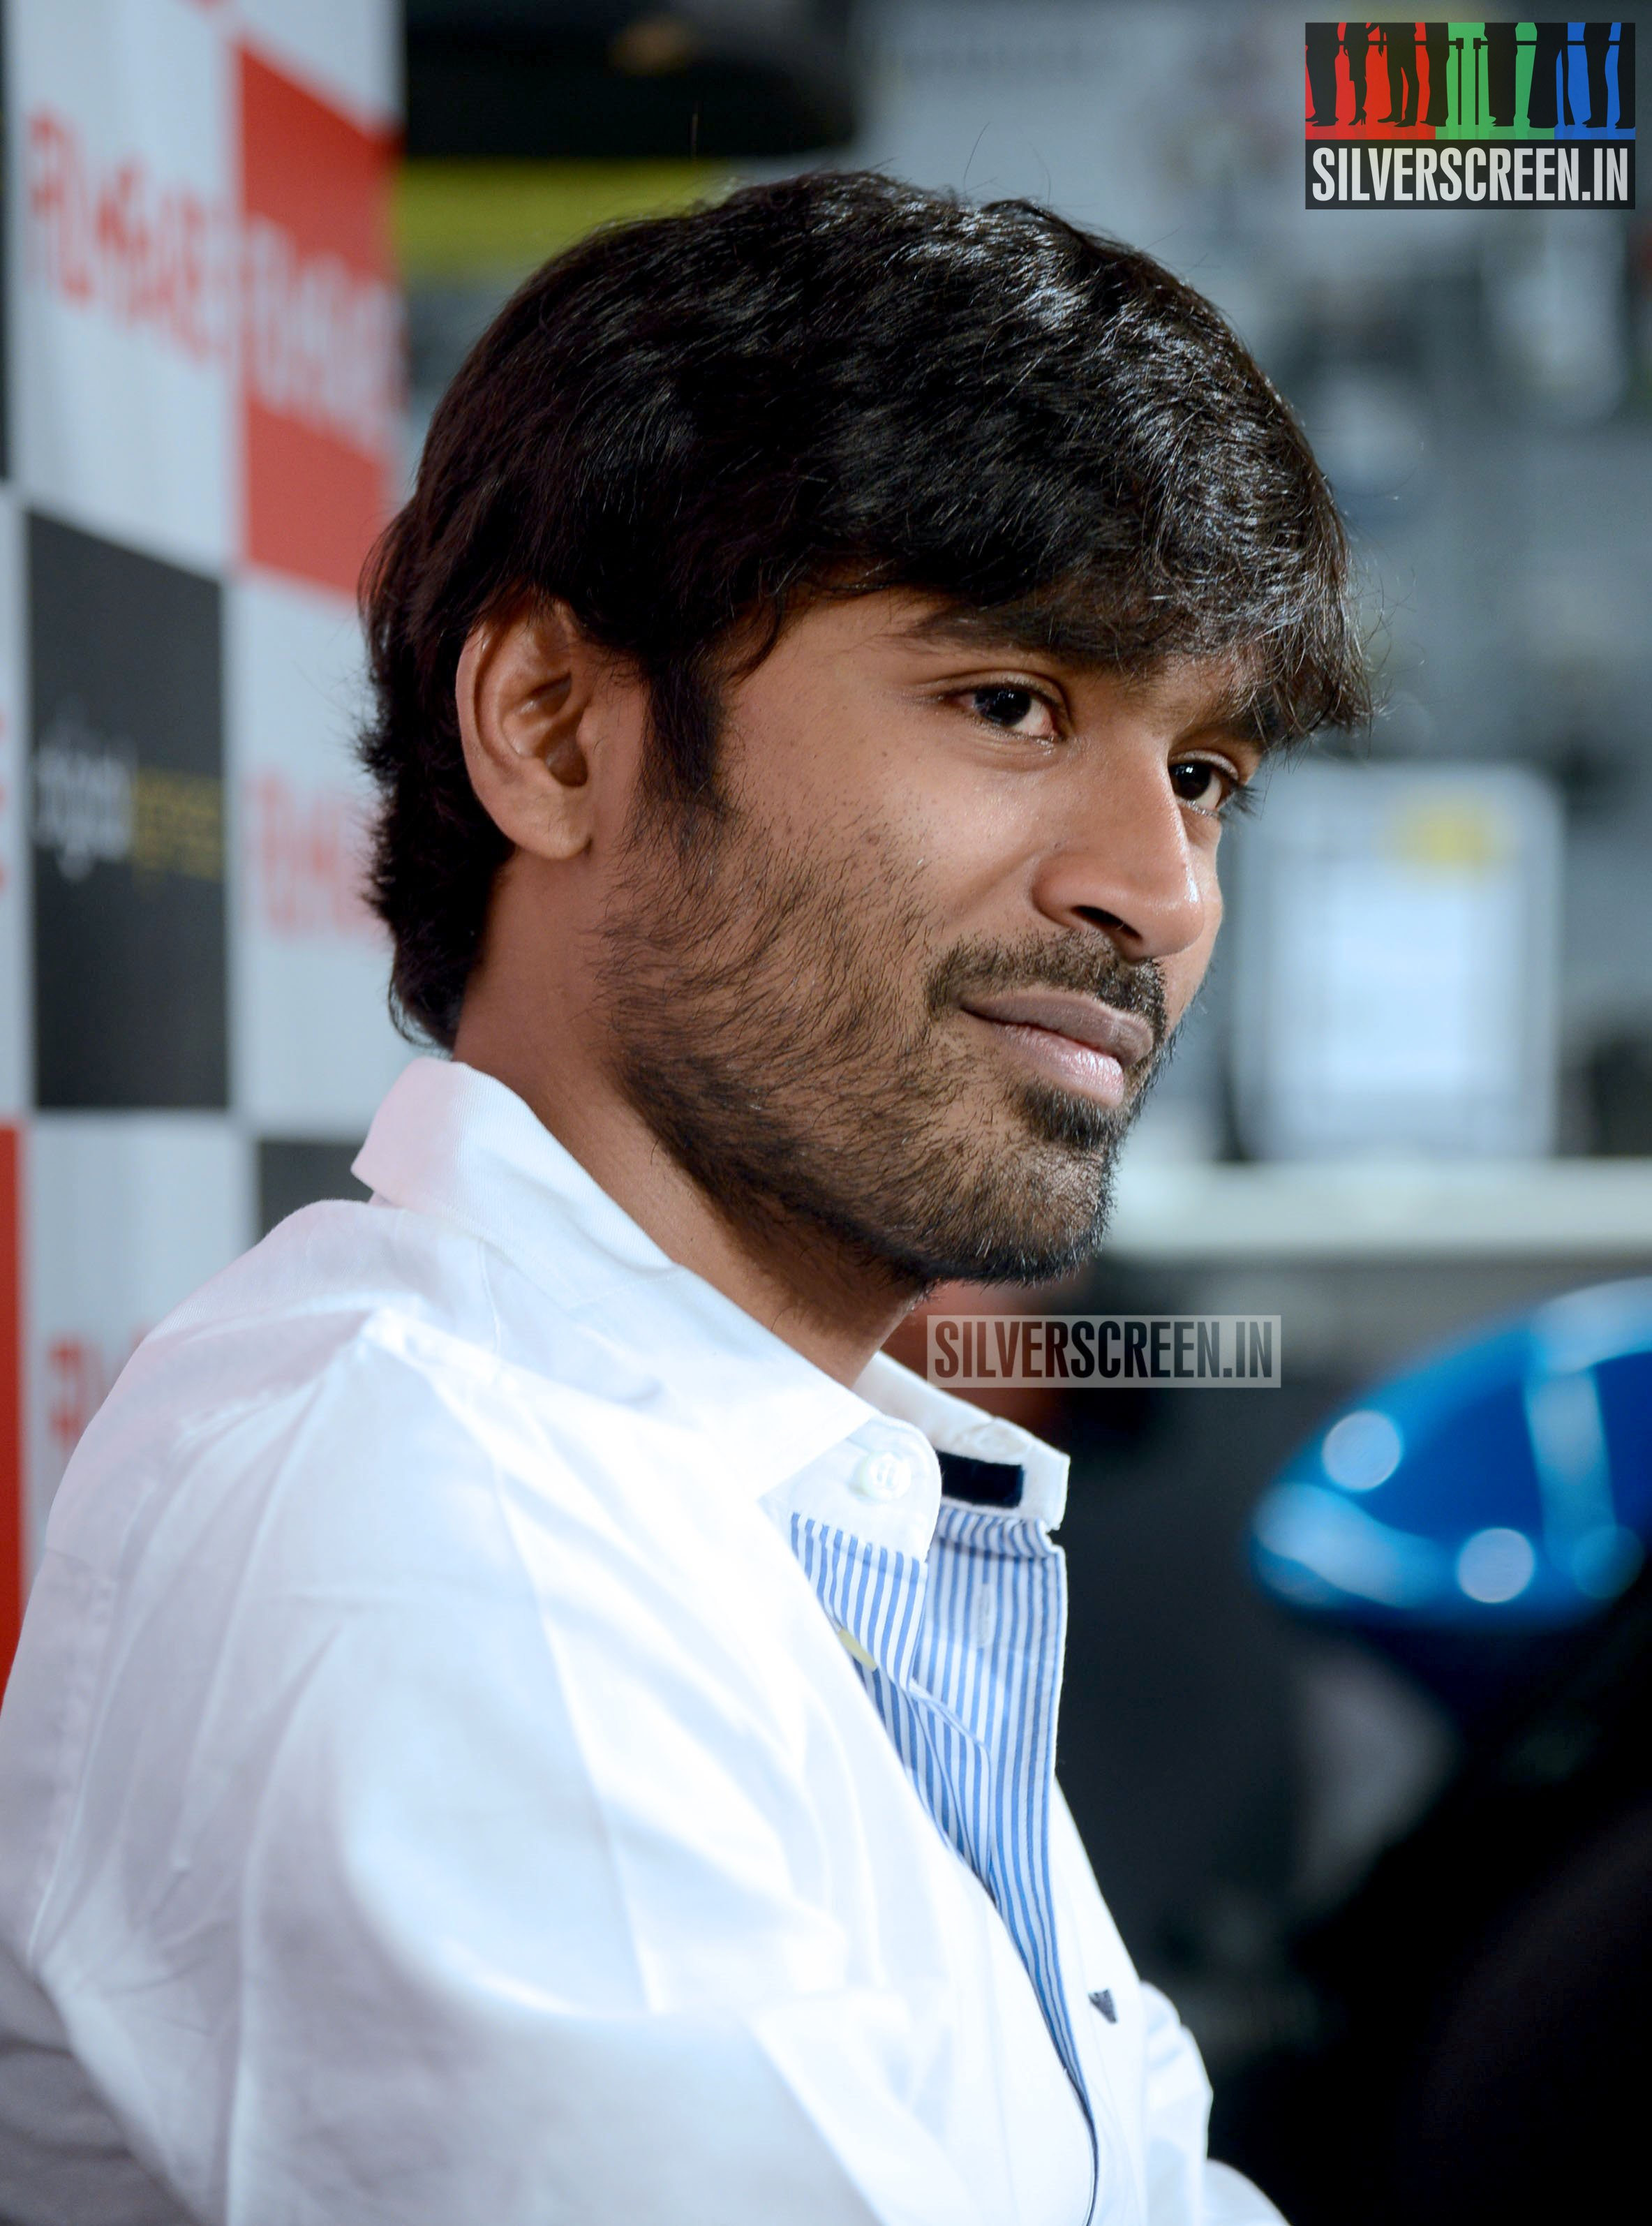 dhanush at the filmfare meet and greet stills | silverscreen.in